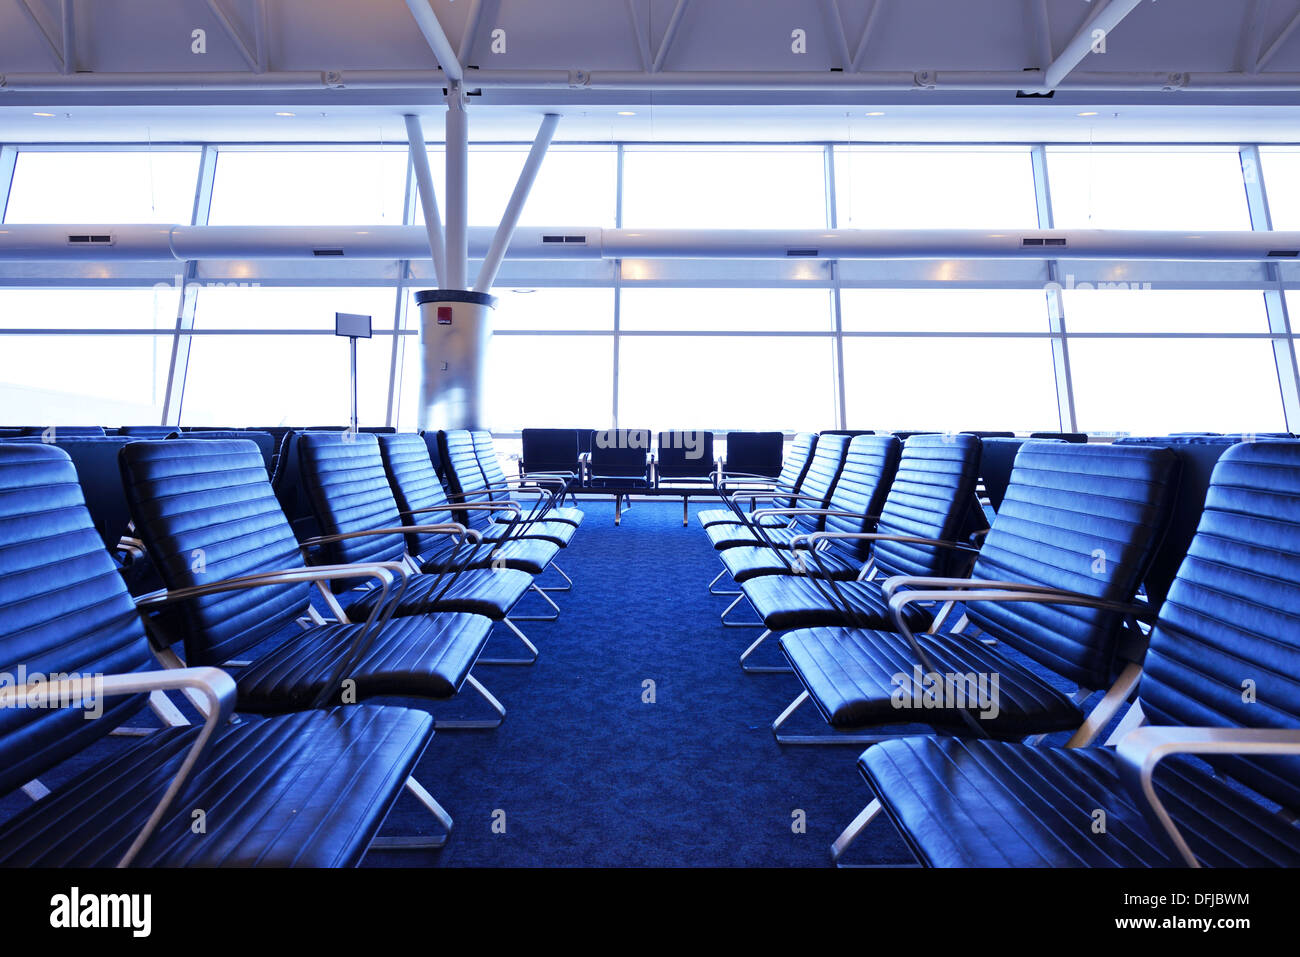 Empty seats at an airport terminal. - Stock Image